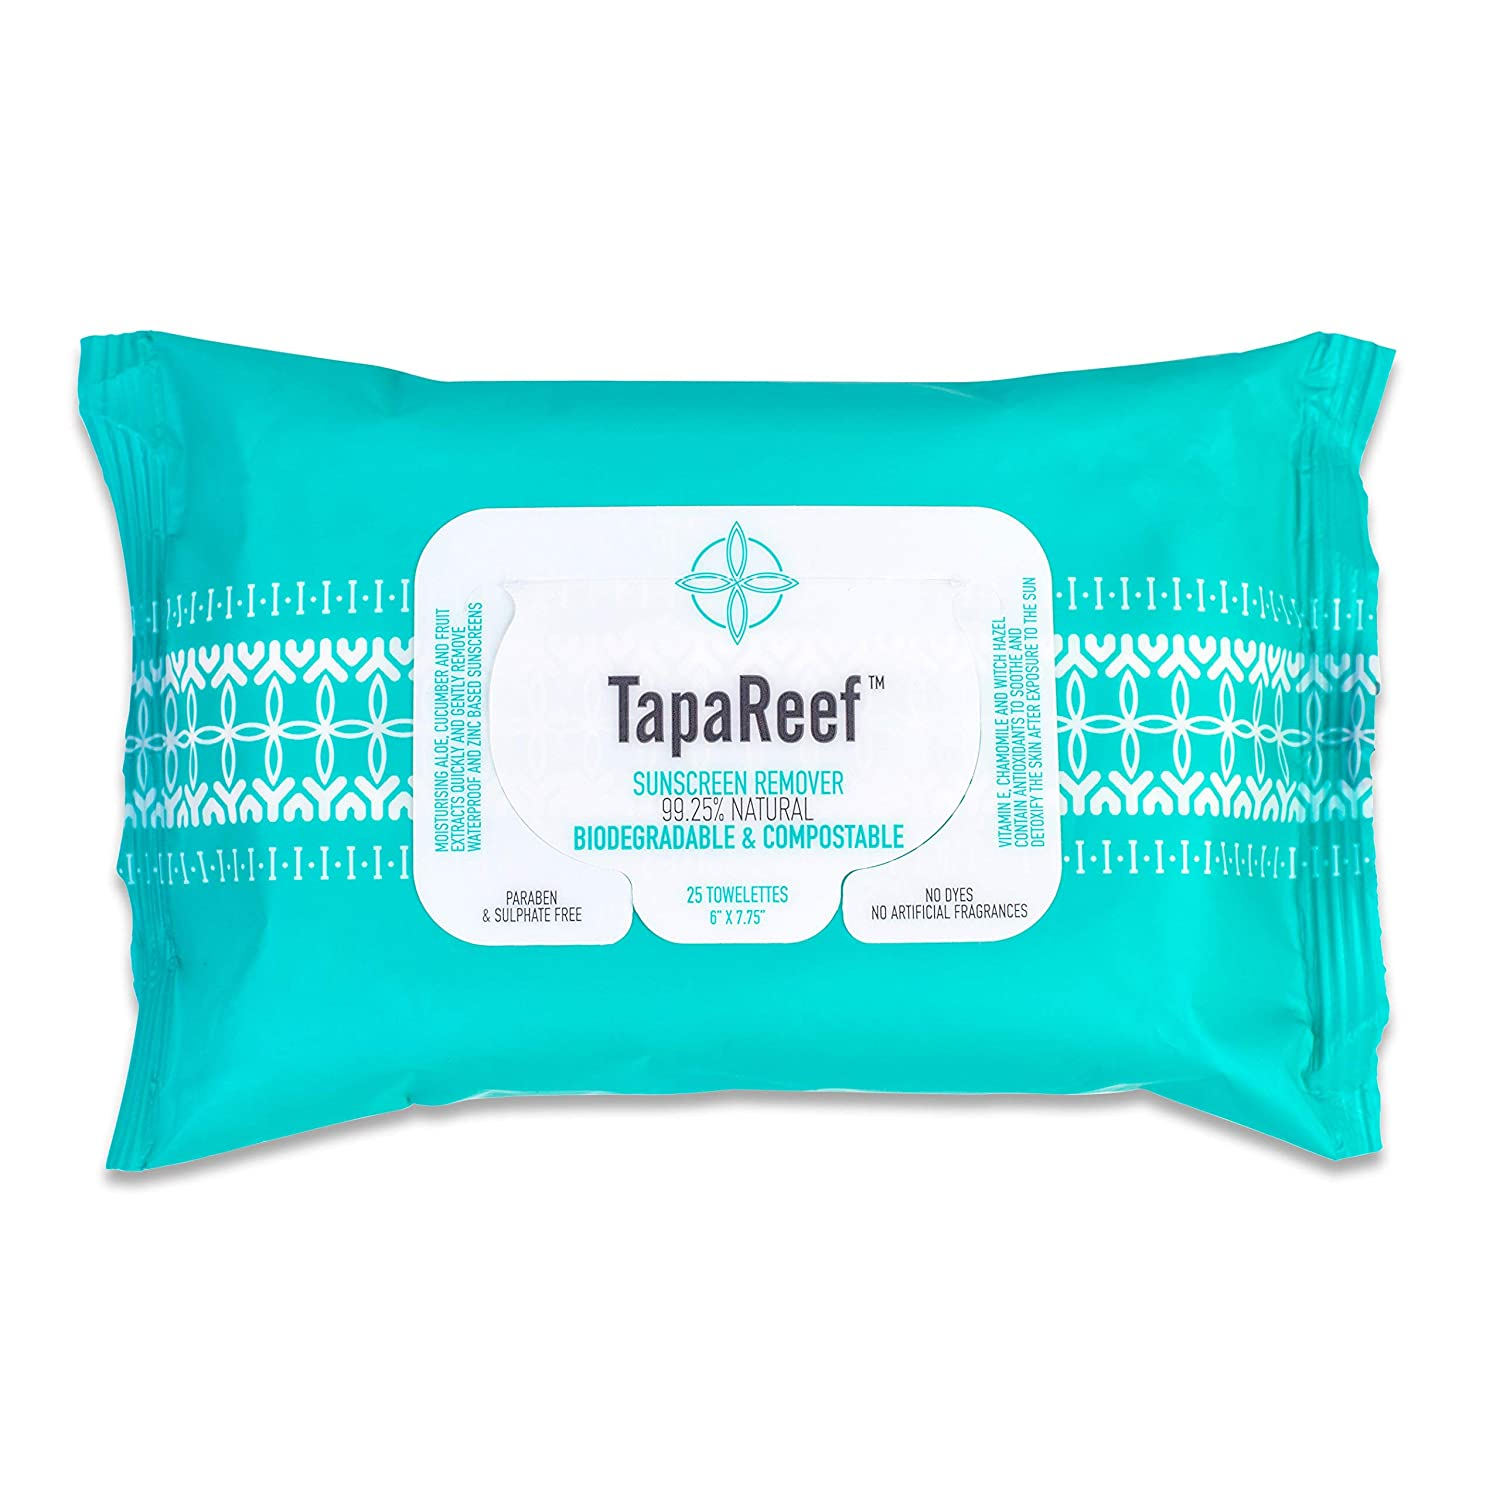 TapaReef Sunscreen Remover Wipes - 25 Count Pouch